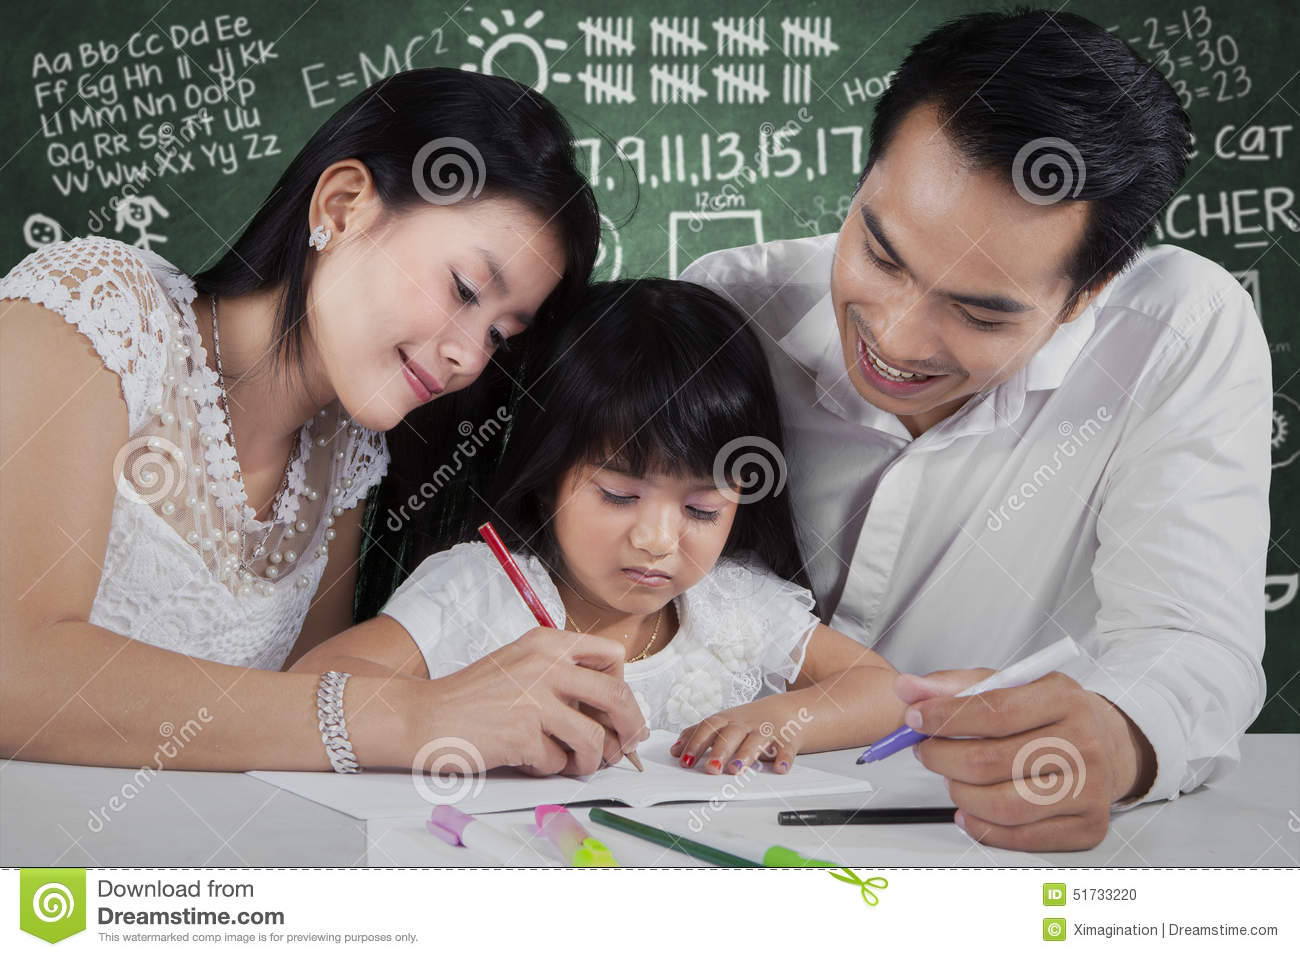 happy family essay Happy family essay - professional writers, exclusive services, fast delivery and other advantages can be found in our academy writing help confide your report to.